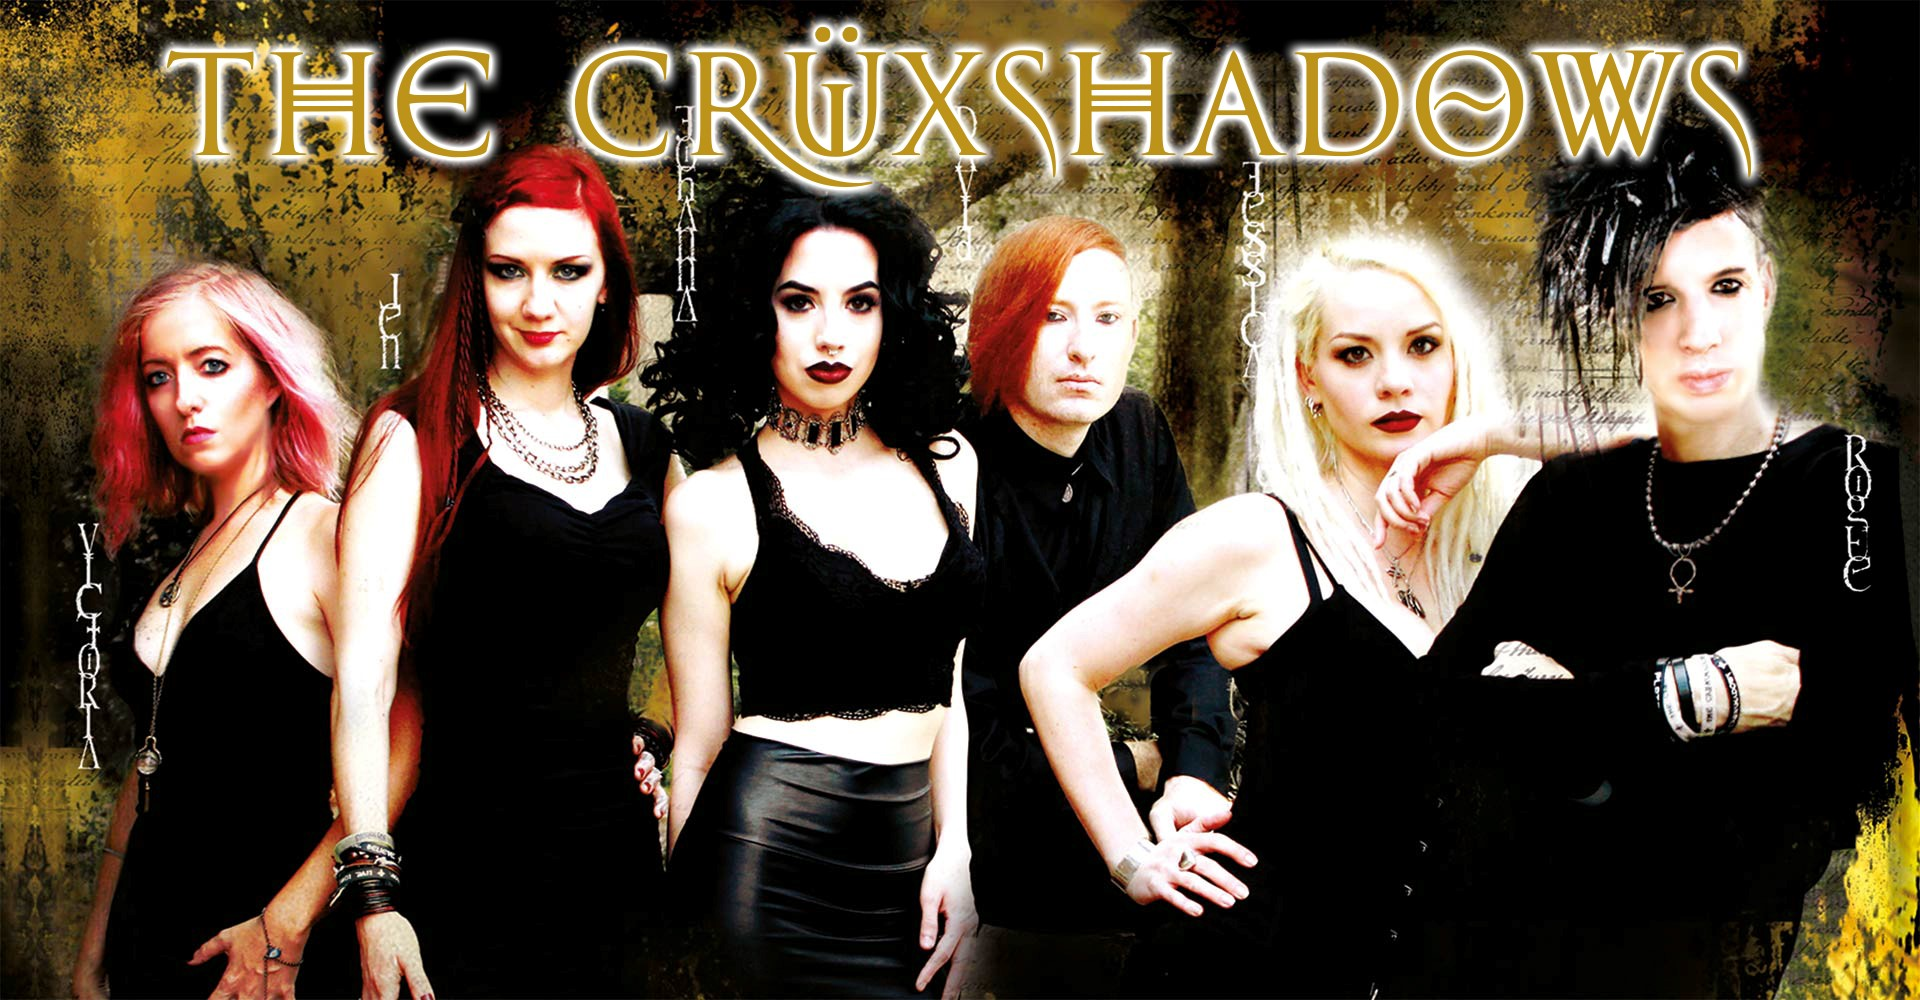 The Cruxshadows